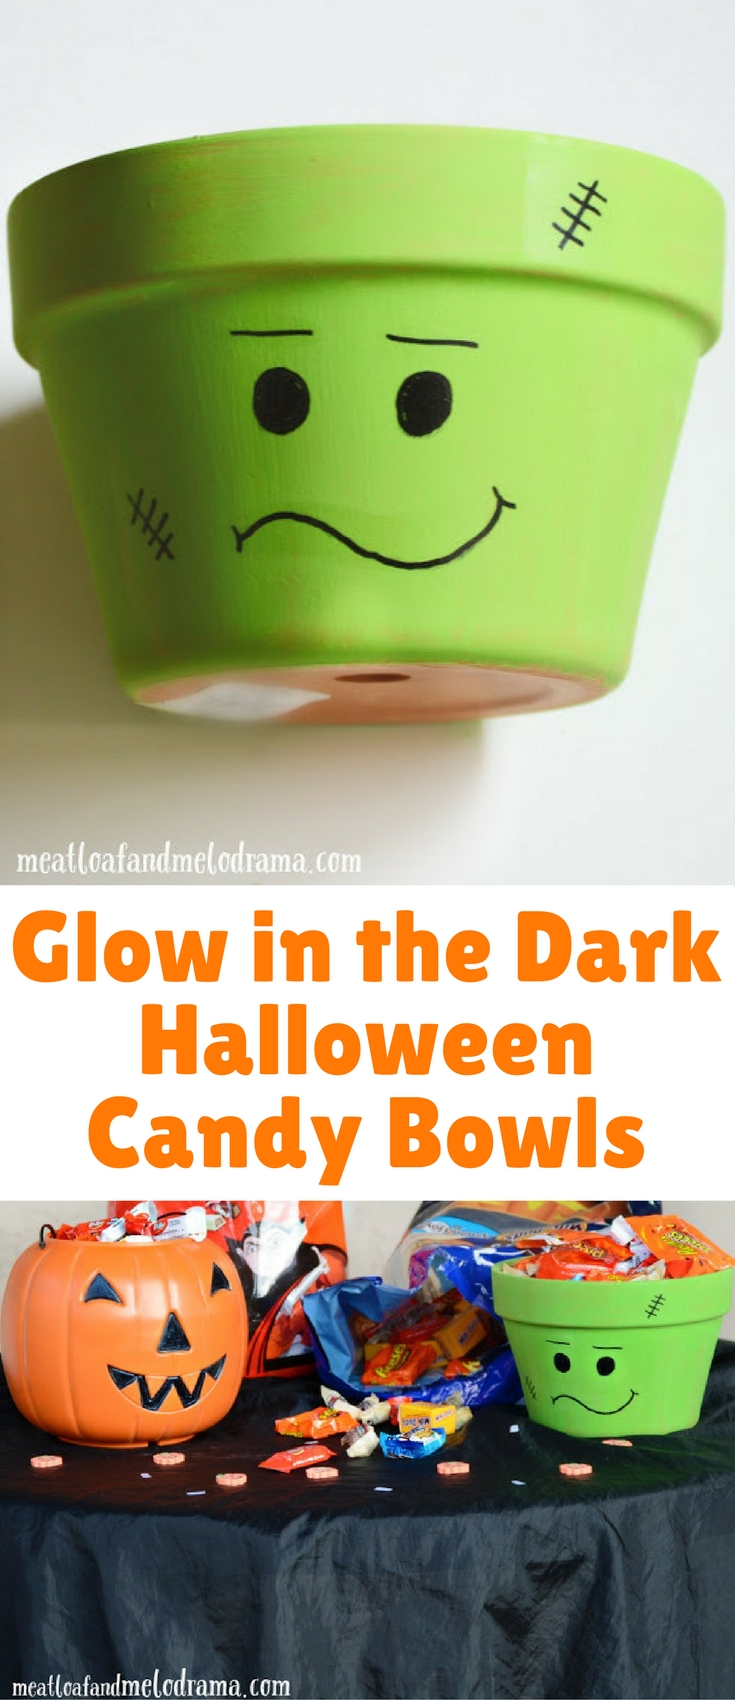 I thought it would be fun to create glow-in-the-dark candy bowls so that they would be visible outside, and I also picked up a plastic pumpkin and a terra cotta planter. Gotta love one stop shopping!